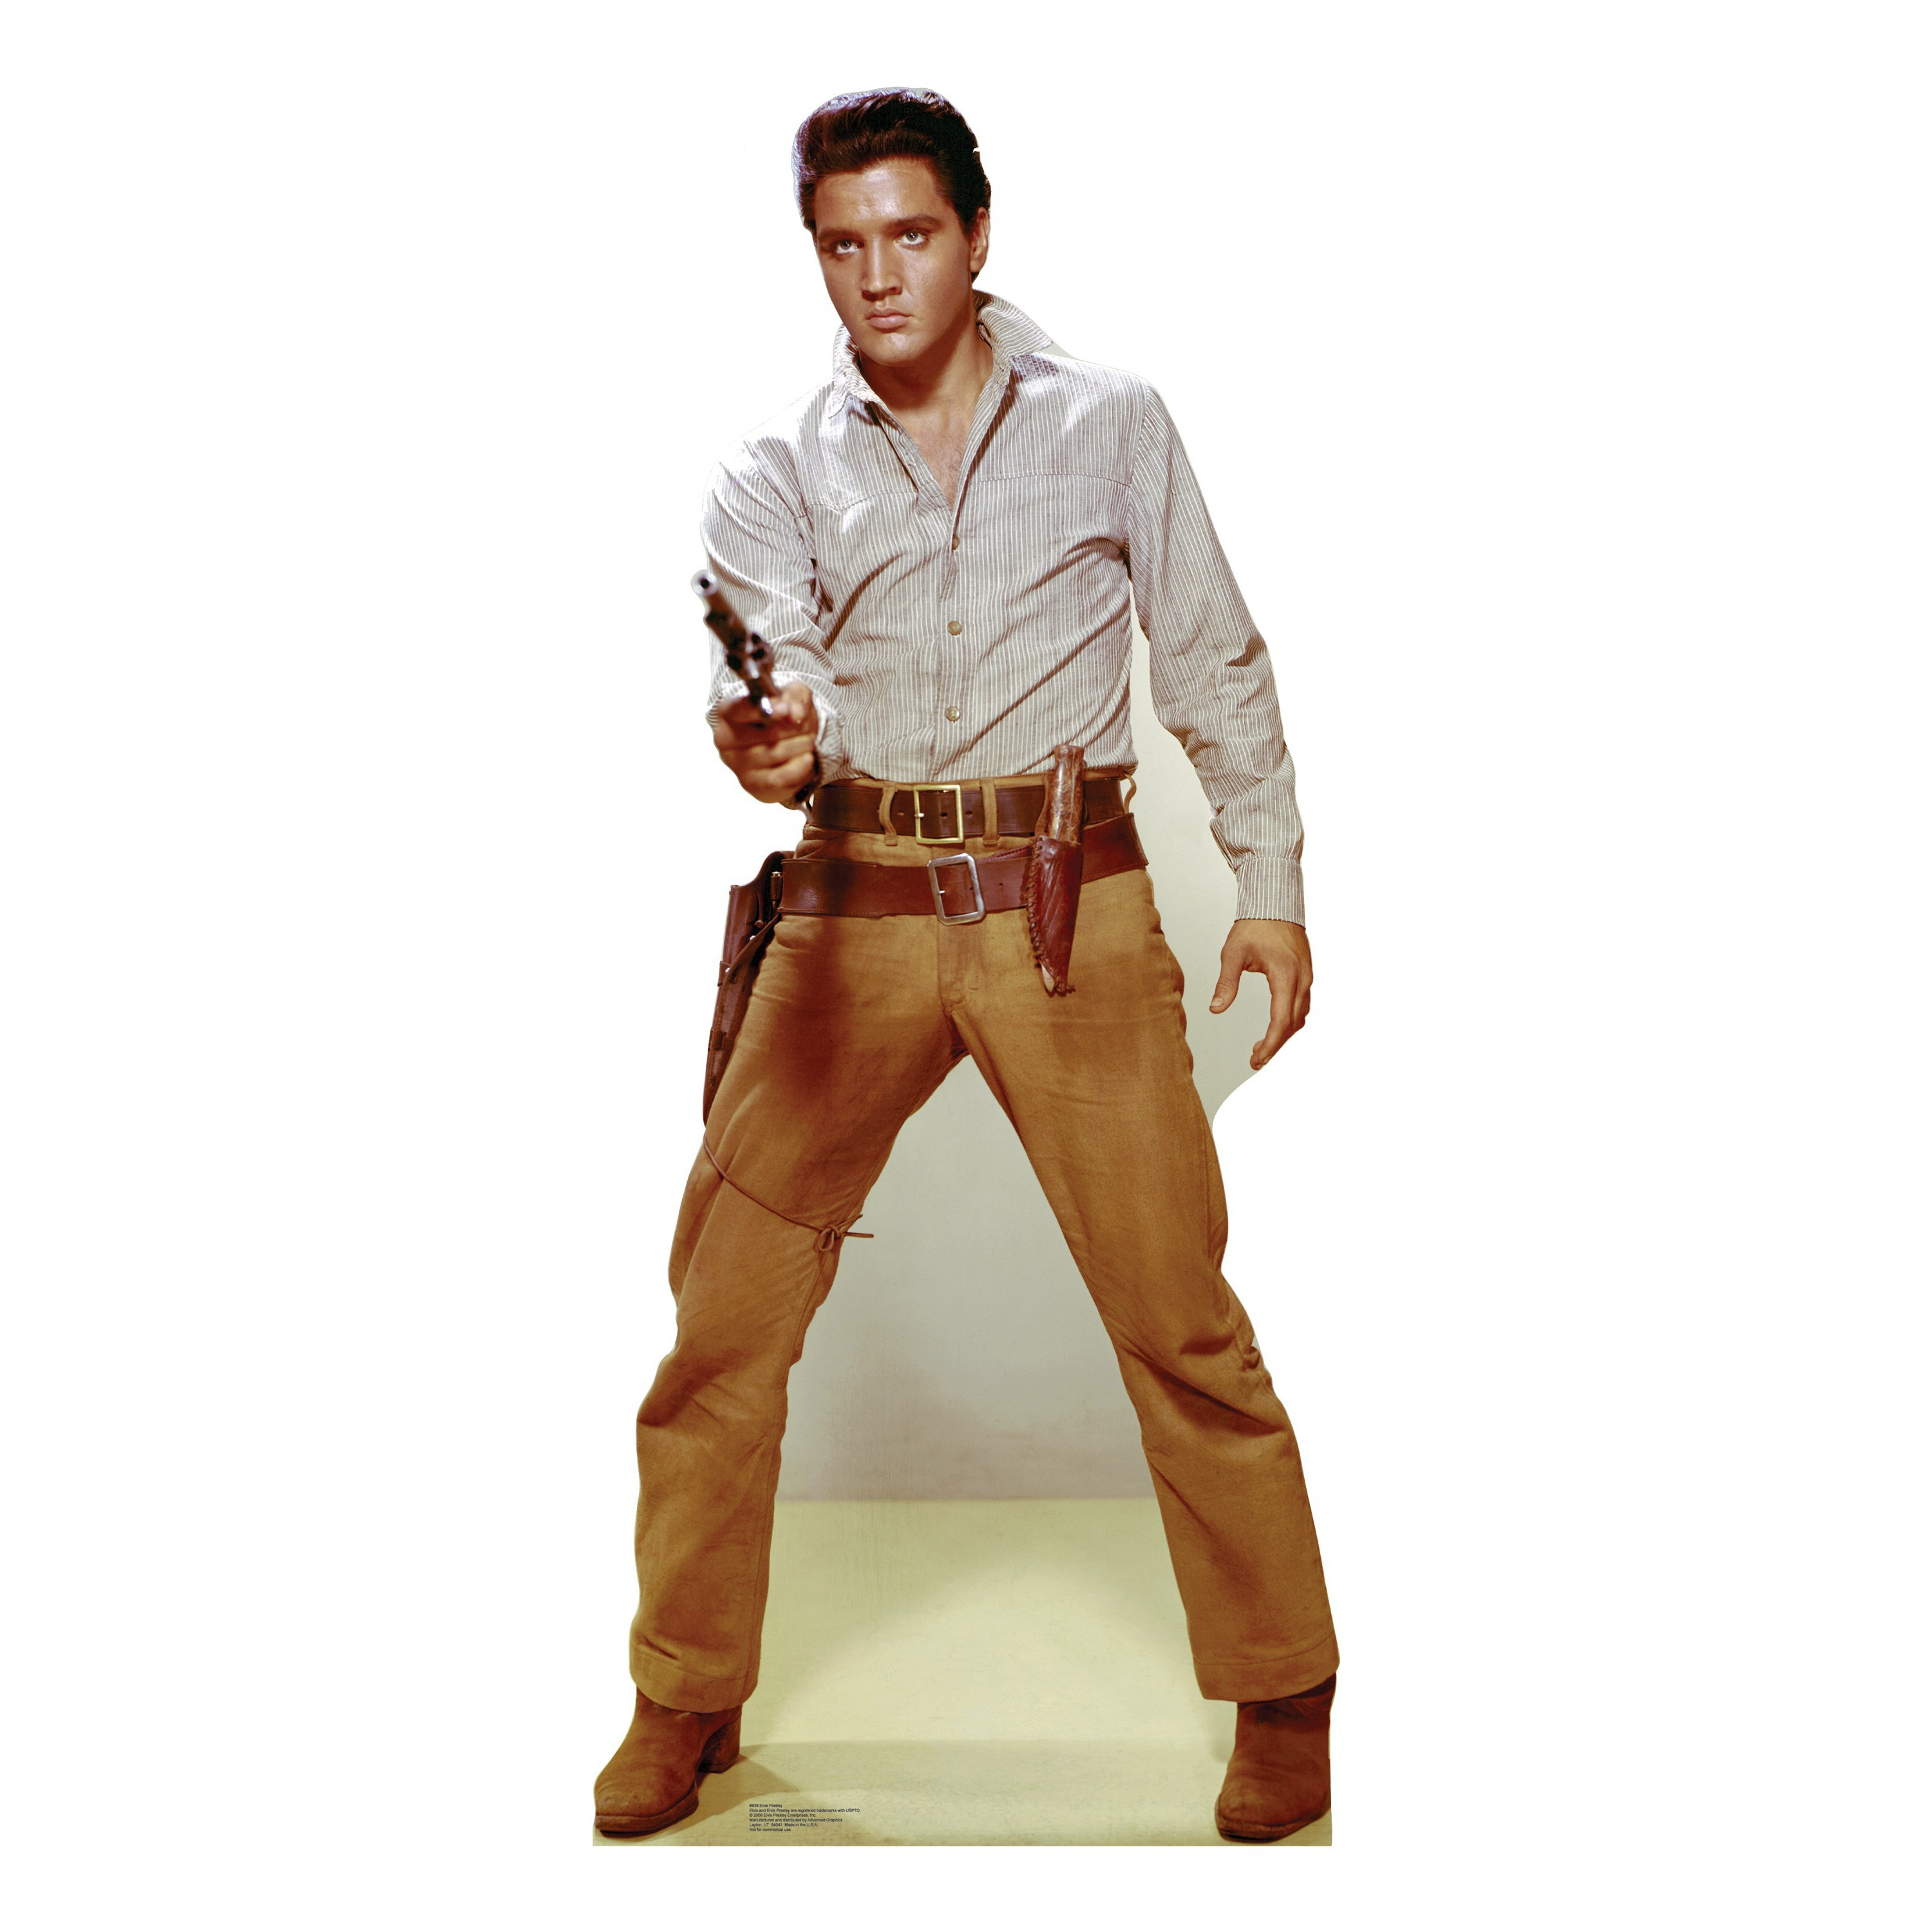 Elvis Flaming Star Gunfighter Lifesize Talking Stand Up